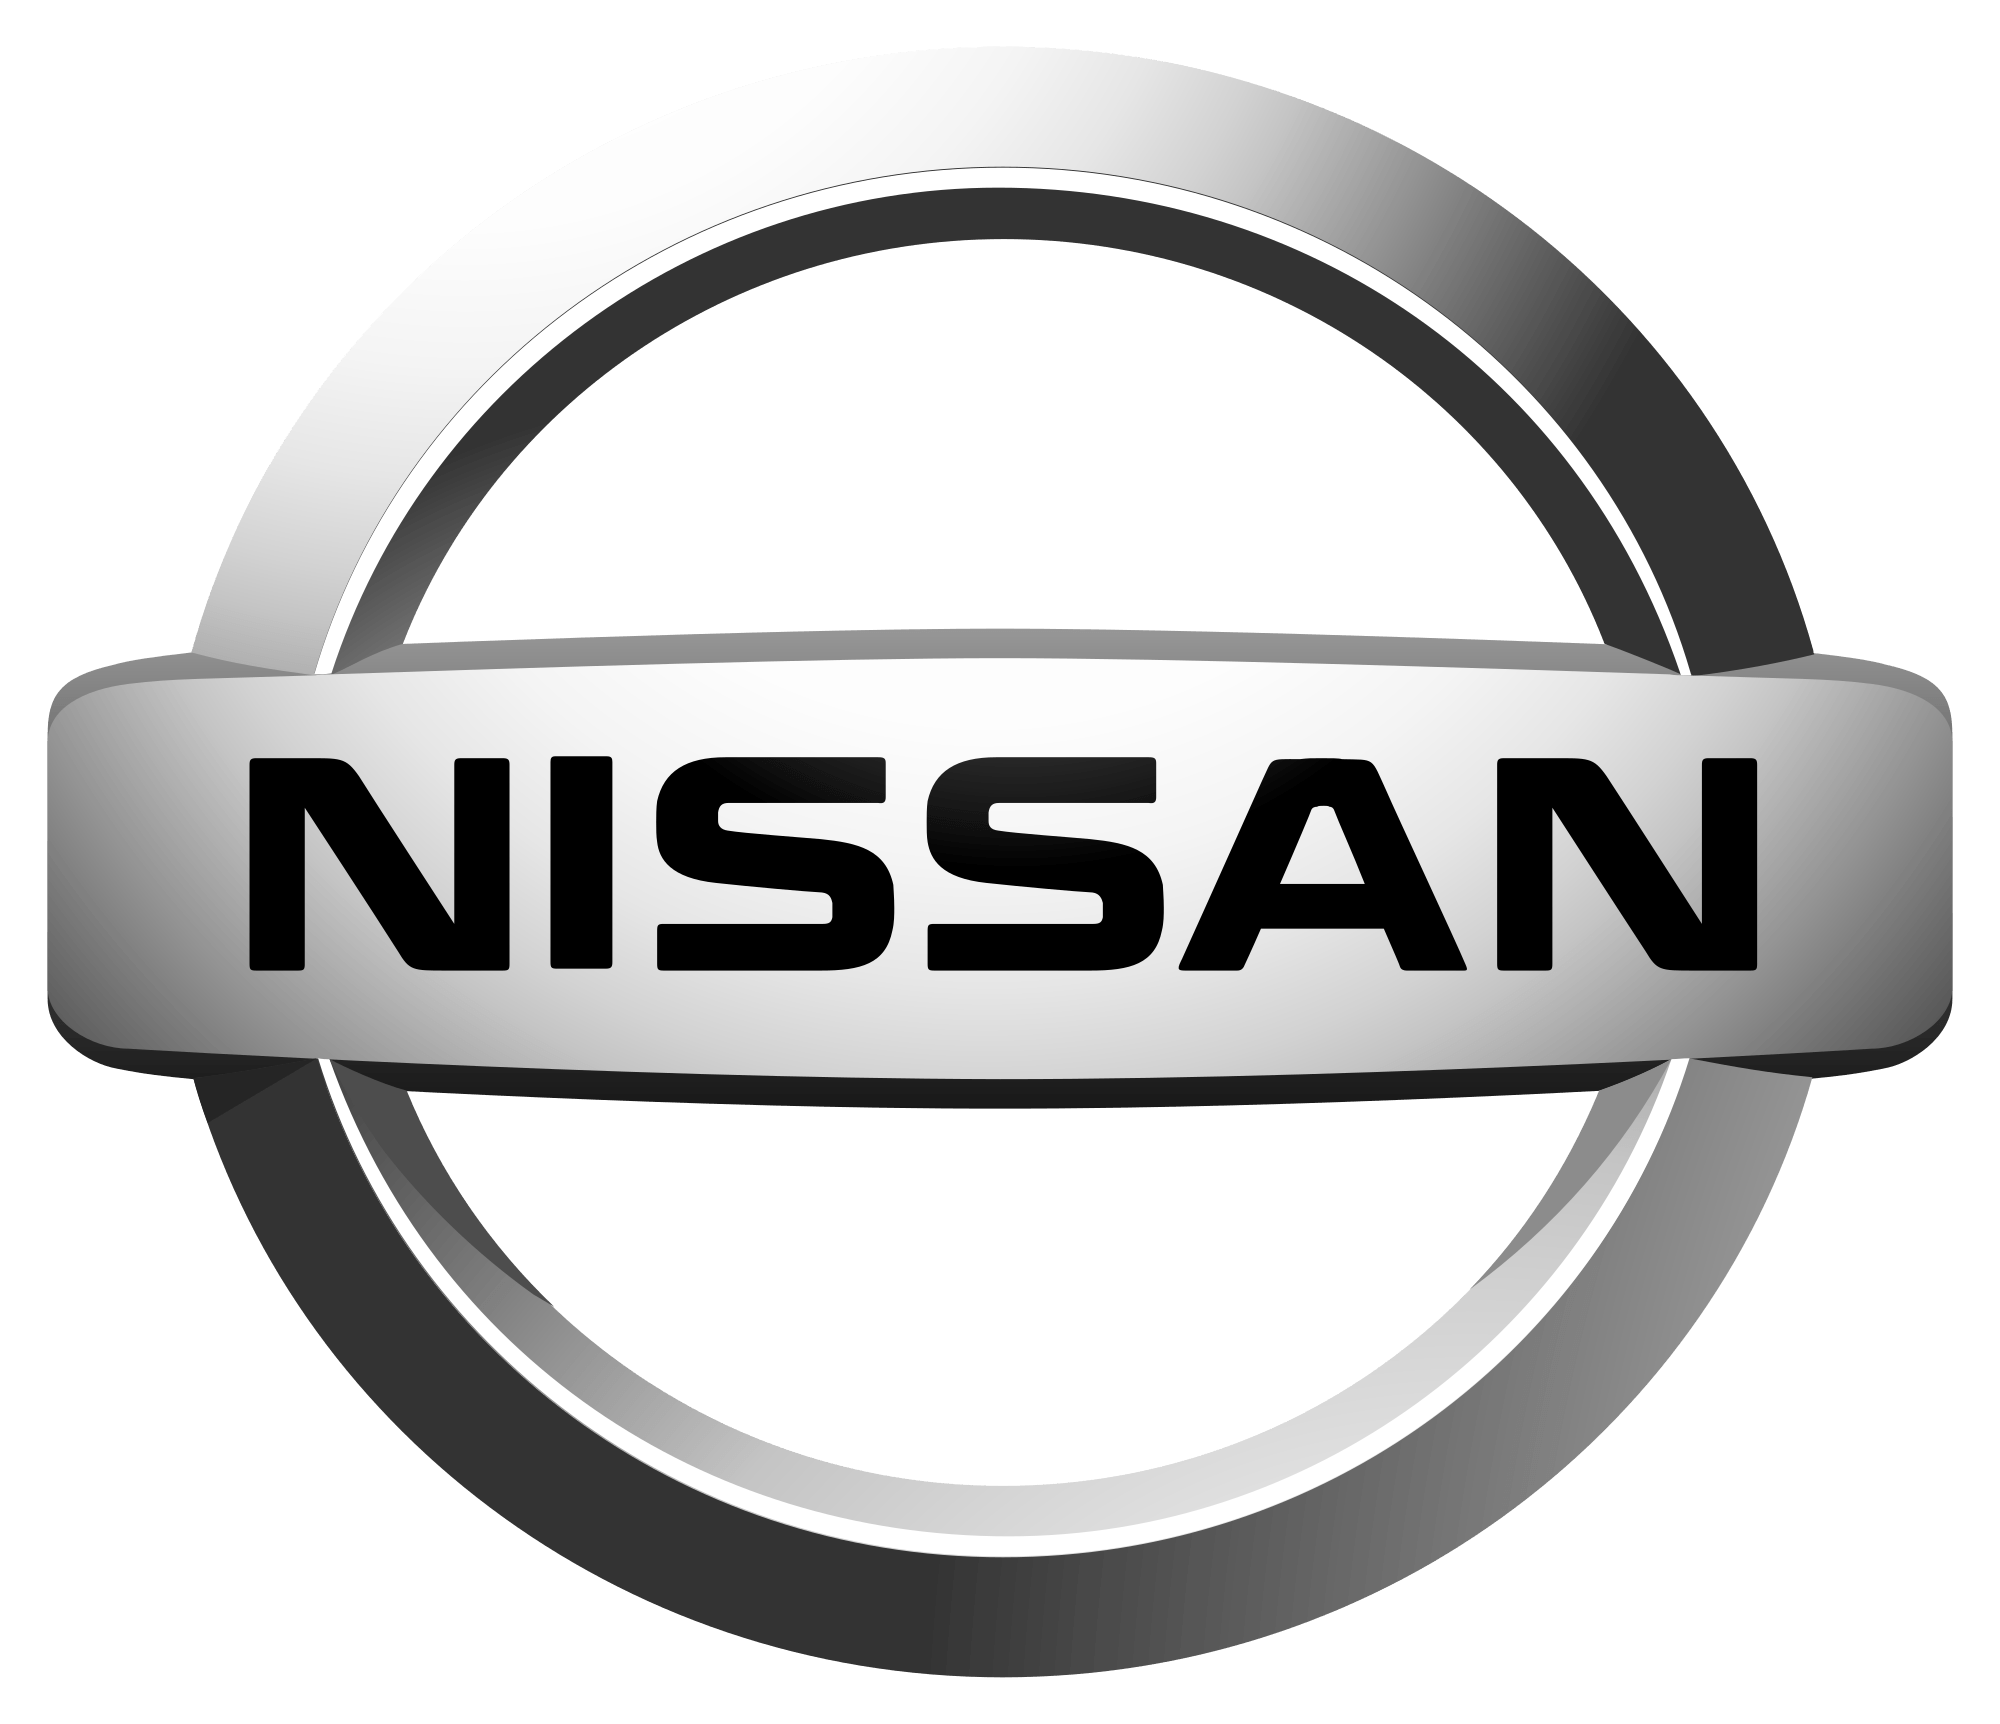 Nissan Logo - Nissan Motor India Private Limited